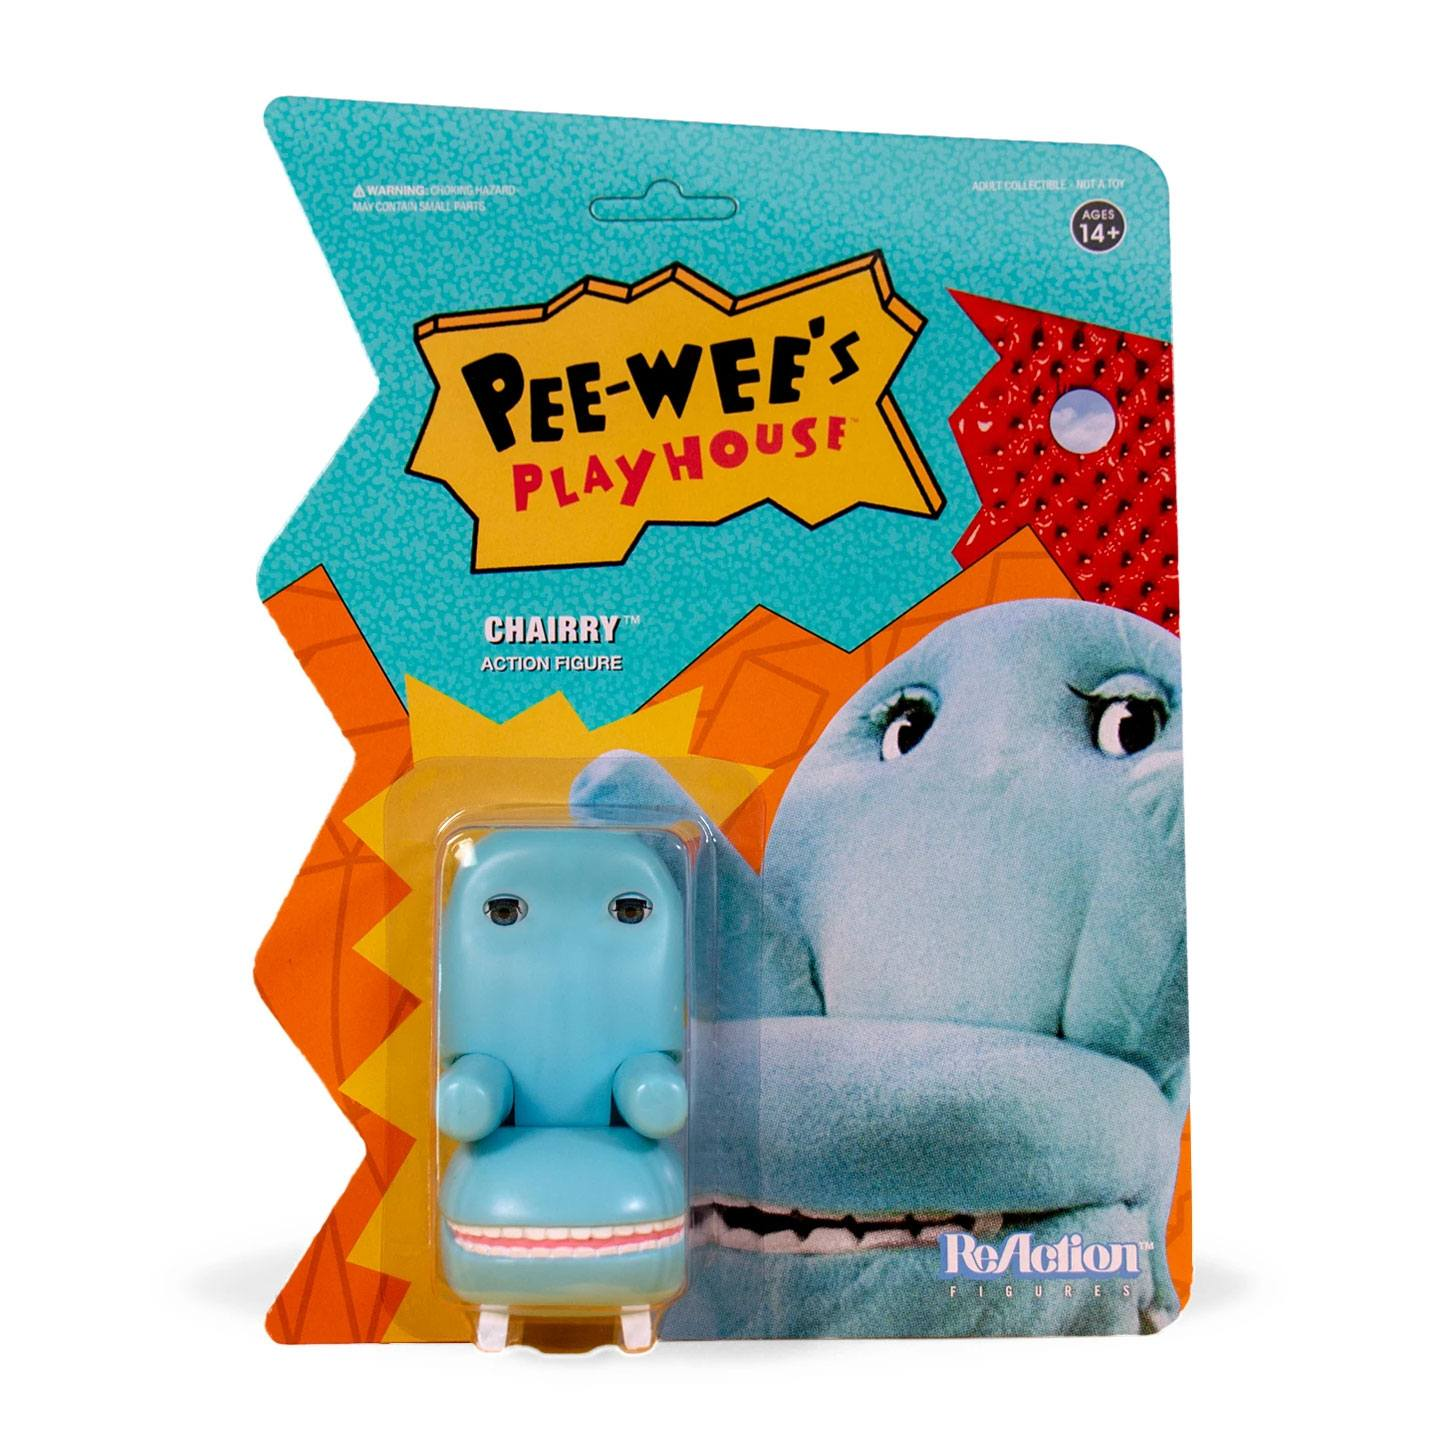 Pee-wee's Playhouse ReAction Action Figure Chairry 10 cm